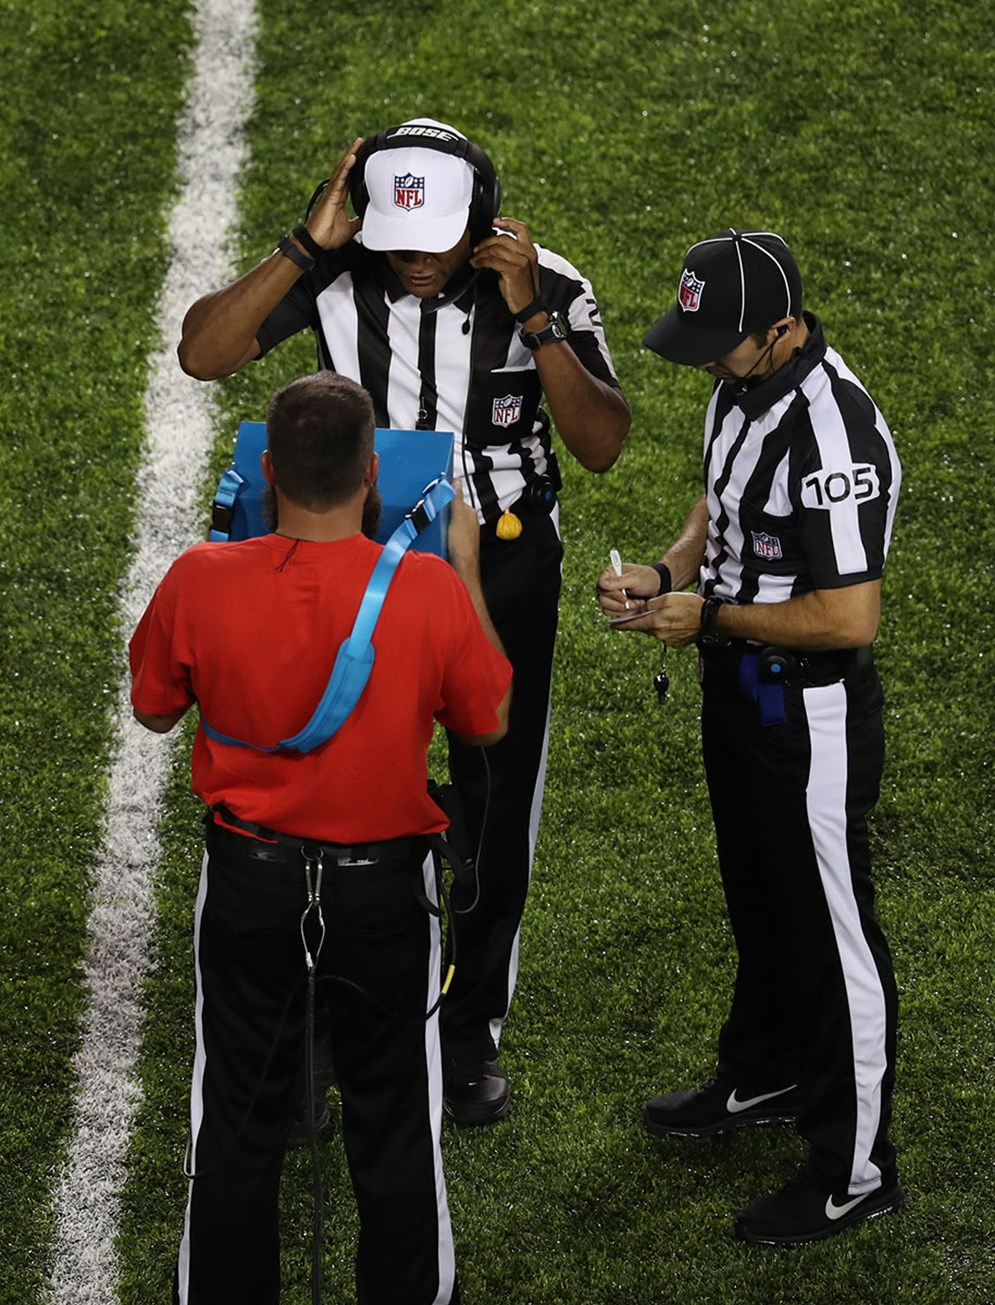 Beginning in 2017, referees will view replays on wired, hand-held Microsoft Surface tablets.